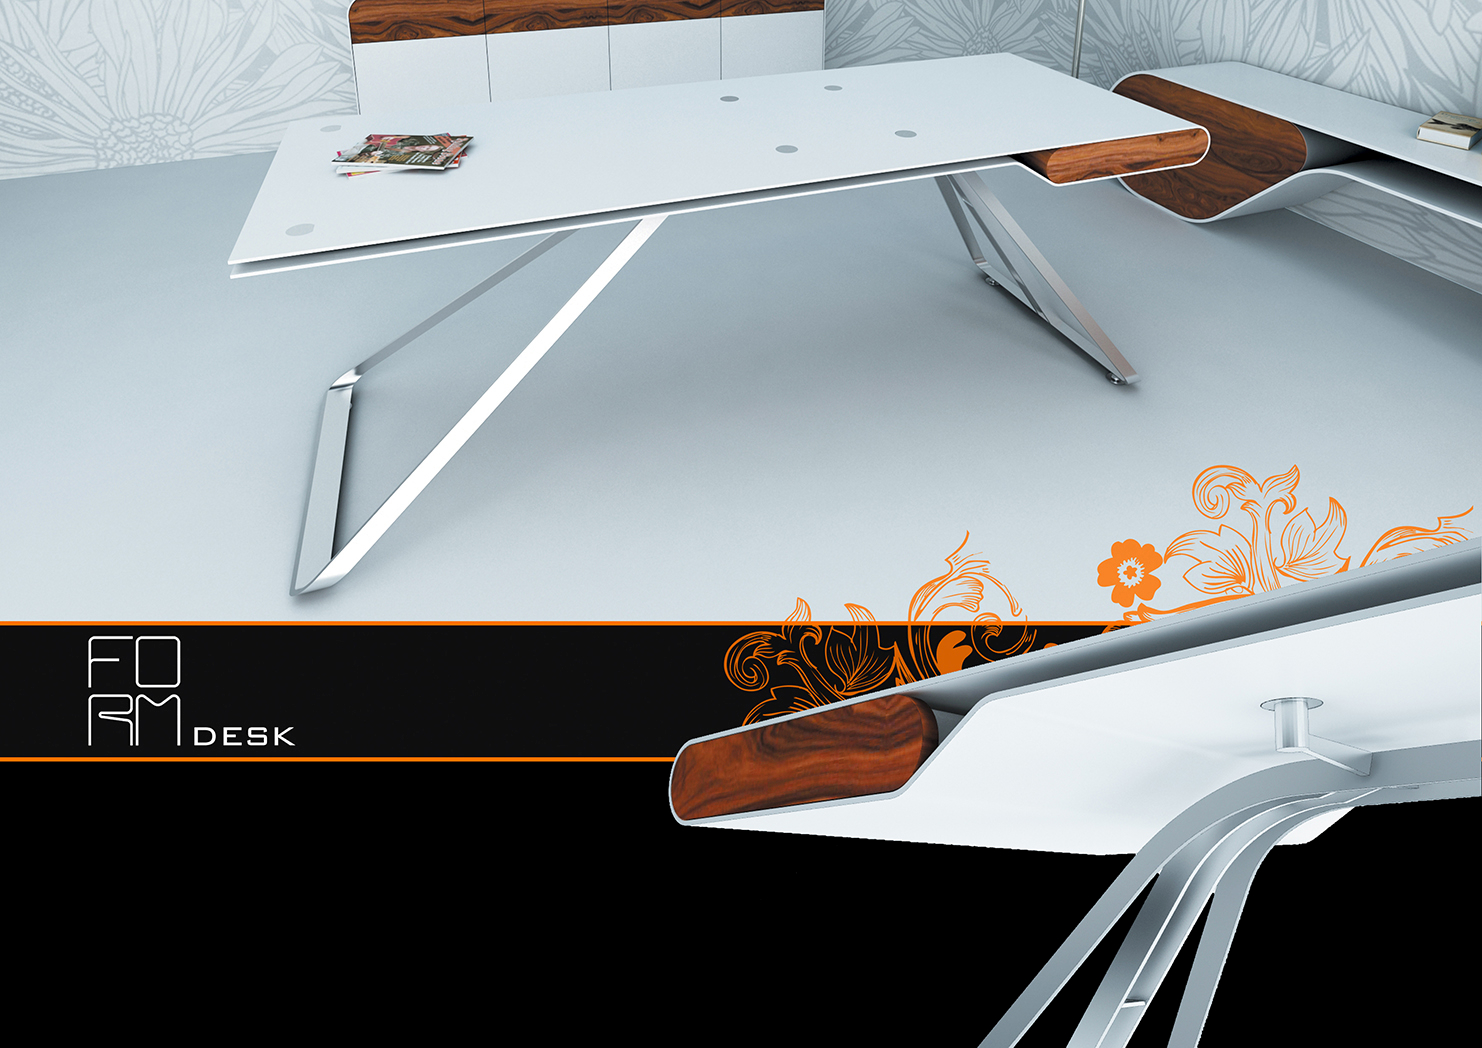 form desk 1- limited edition furniture